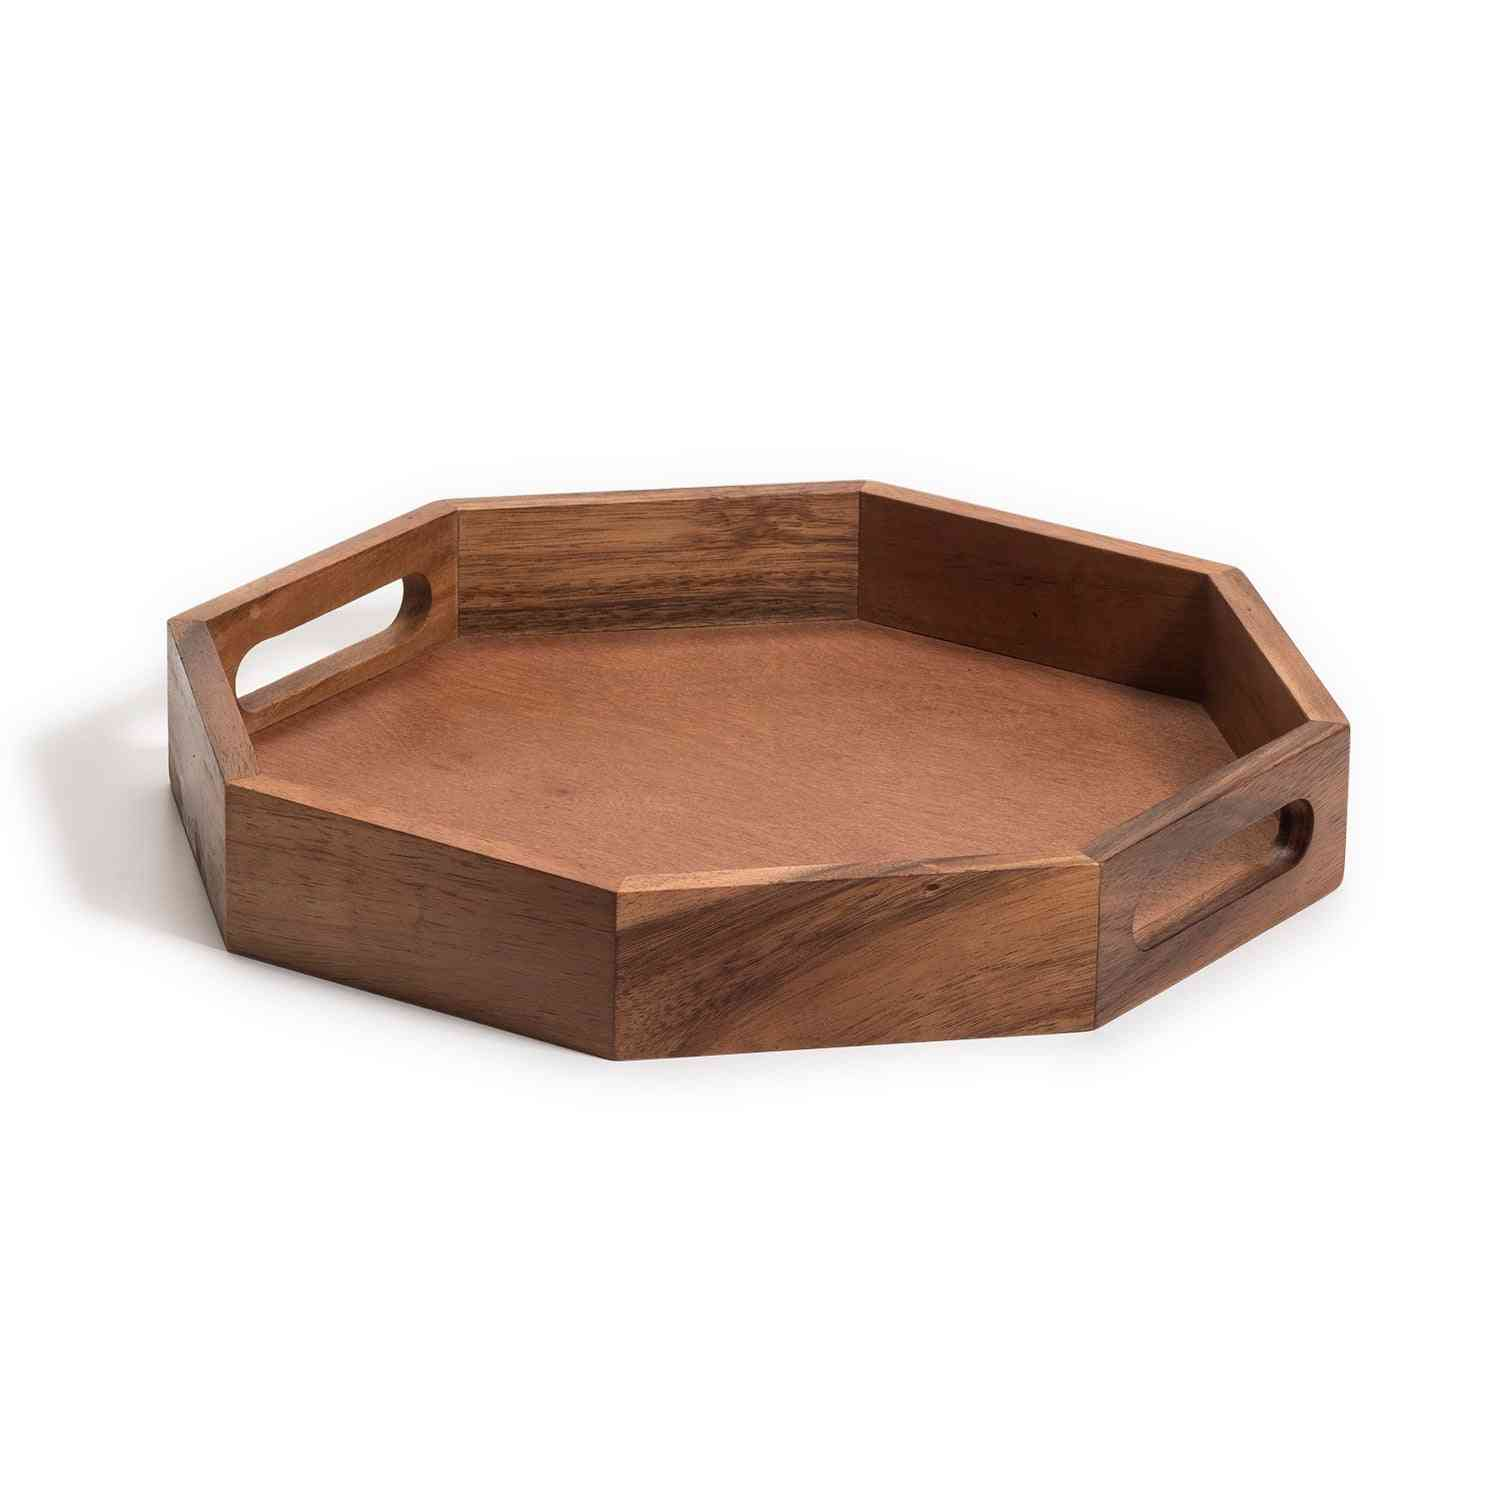 Octagon Wood Charcuterie/serving Tray 15